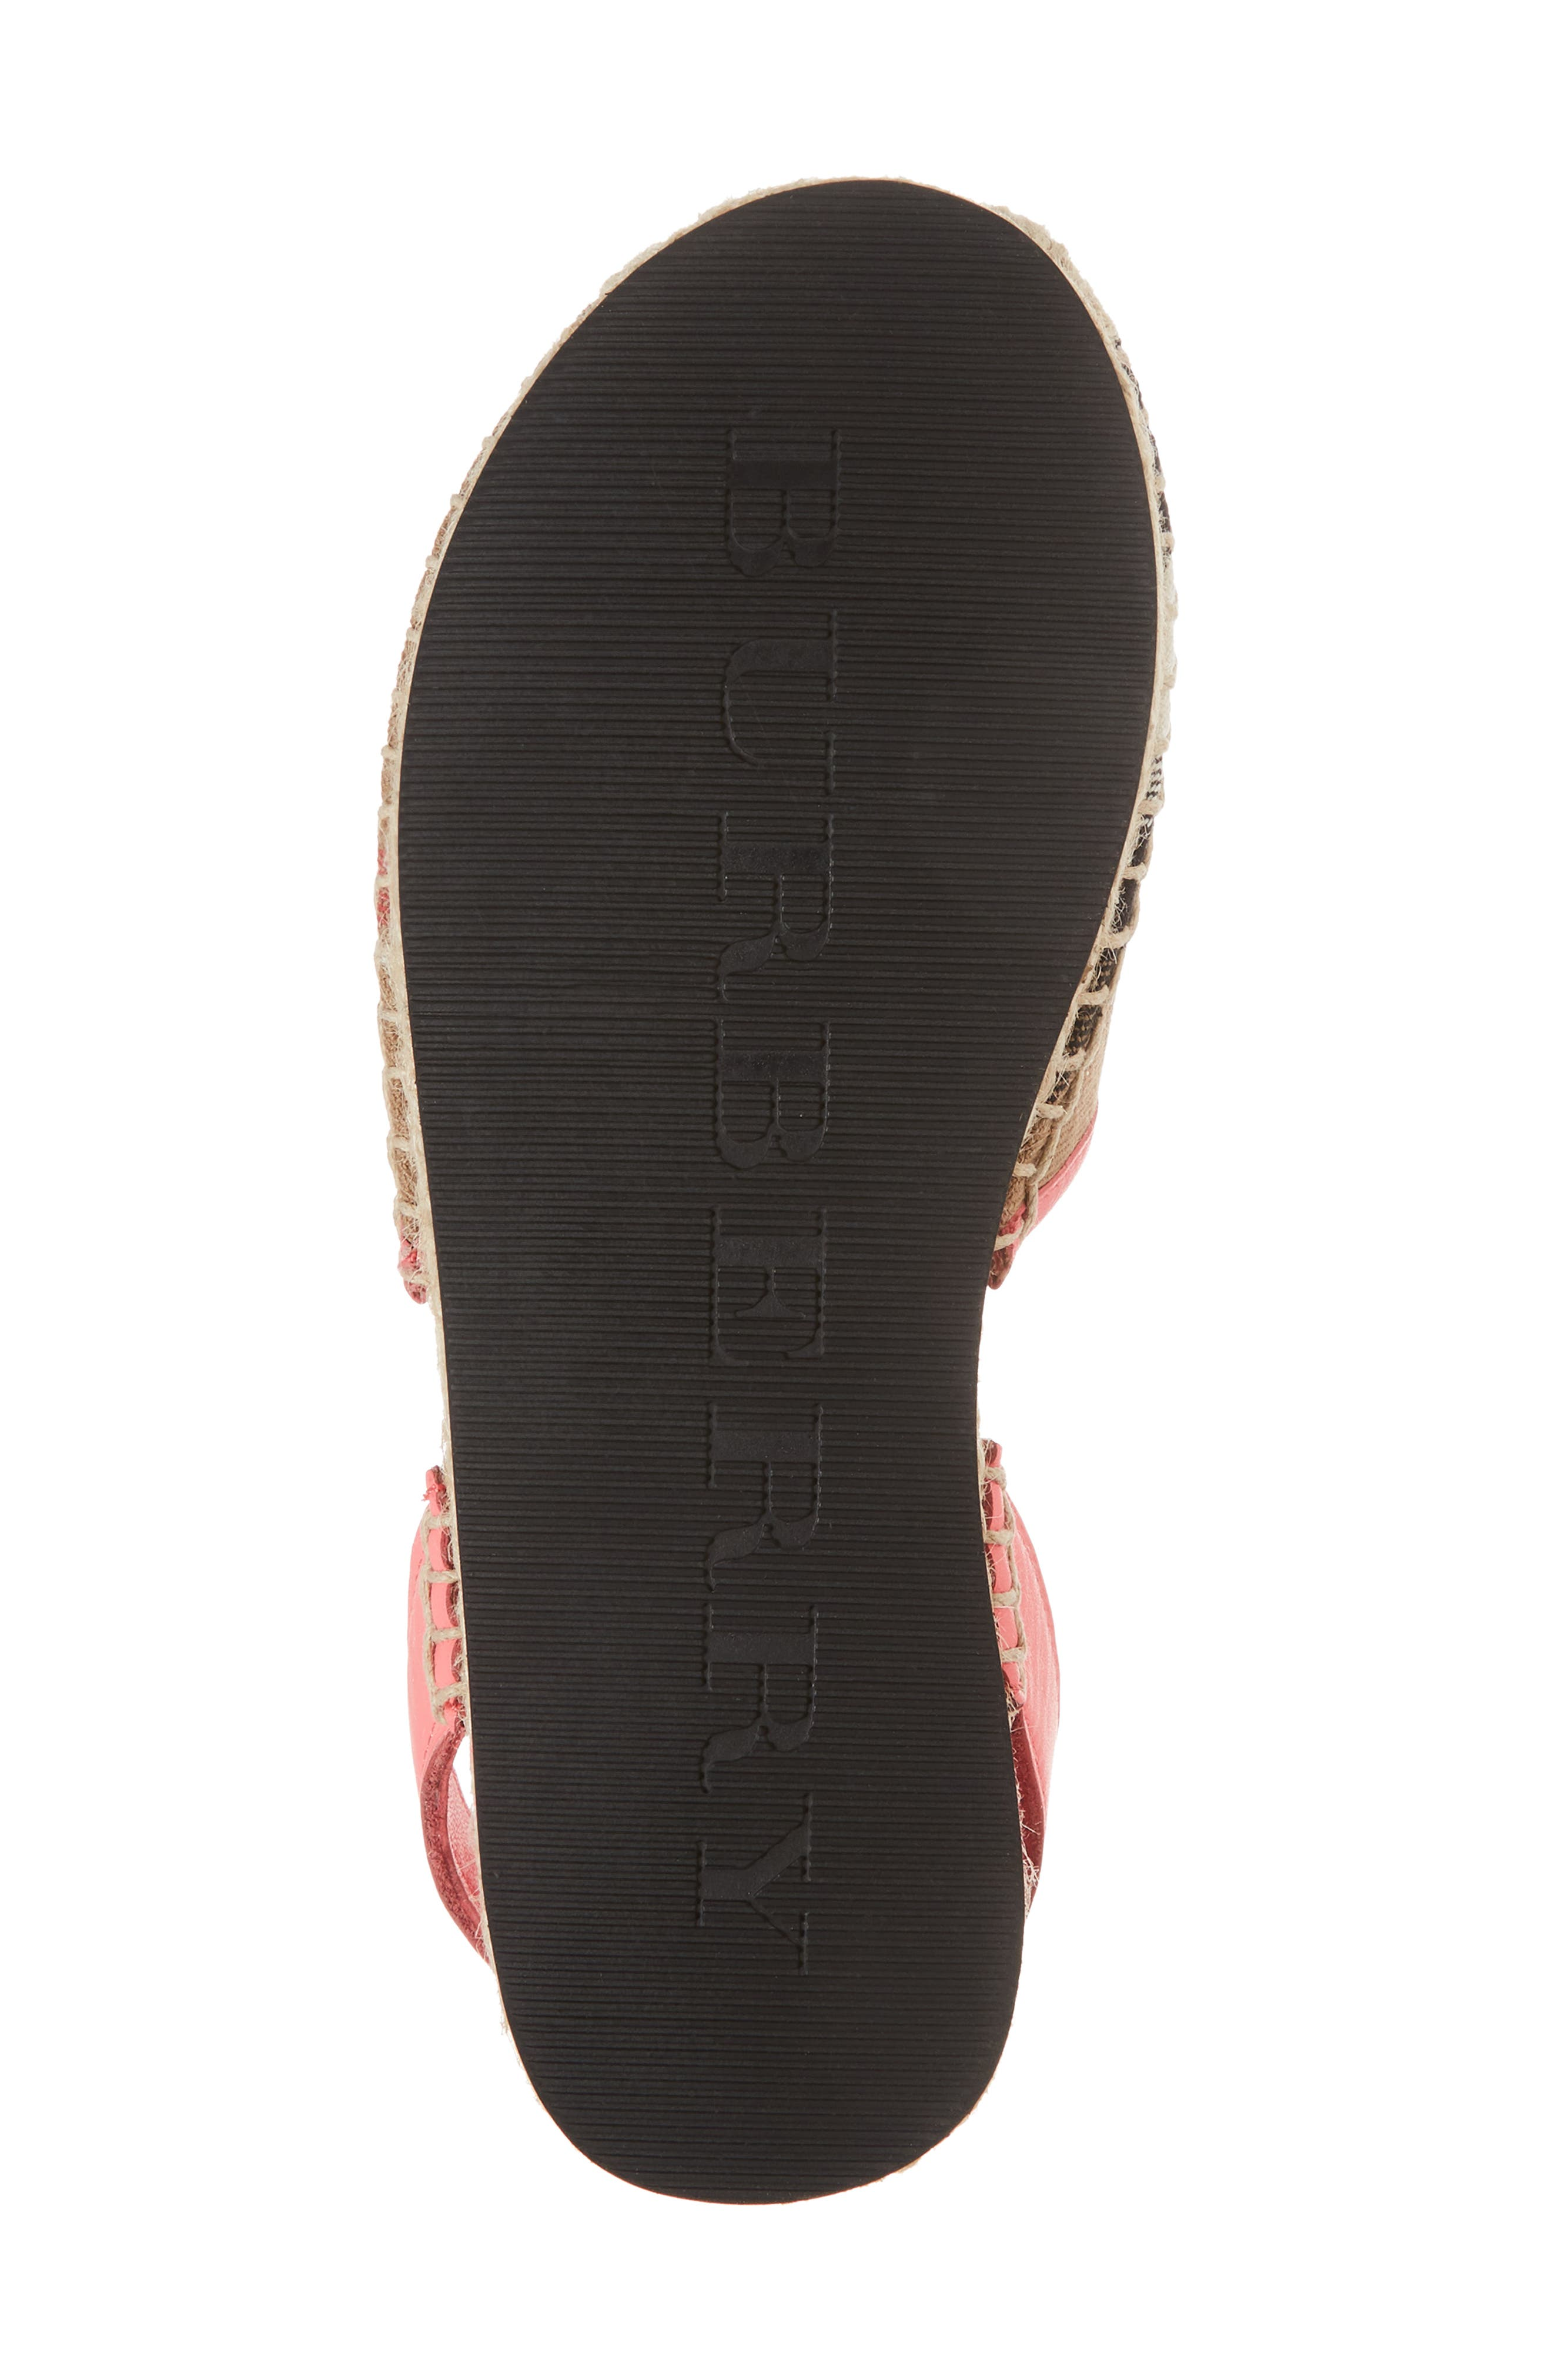 New Perth Espadrille Sandal,                             Alternate thumbnail 6, color,                             Bright Peony Rose